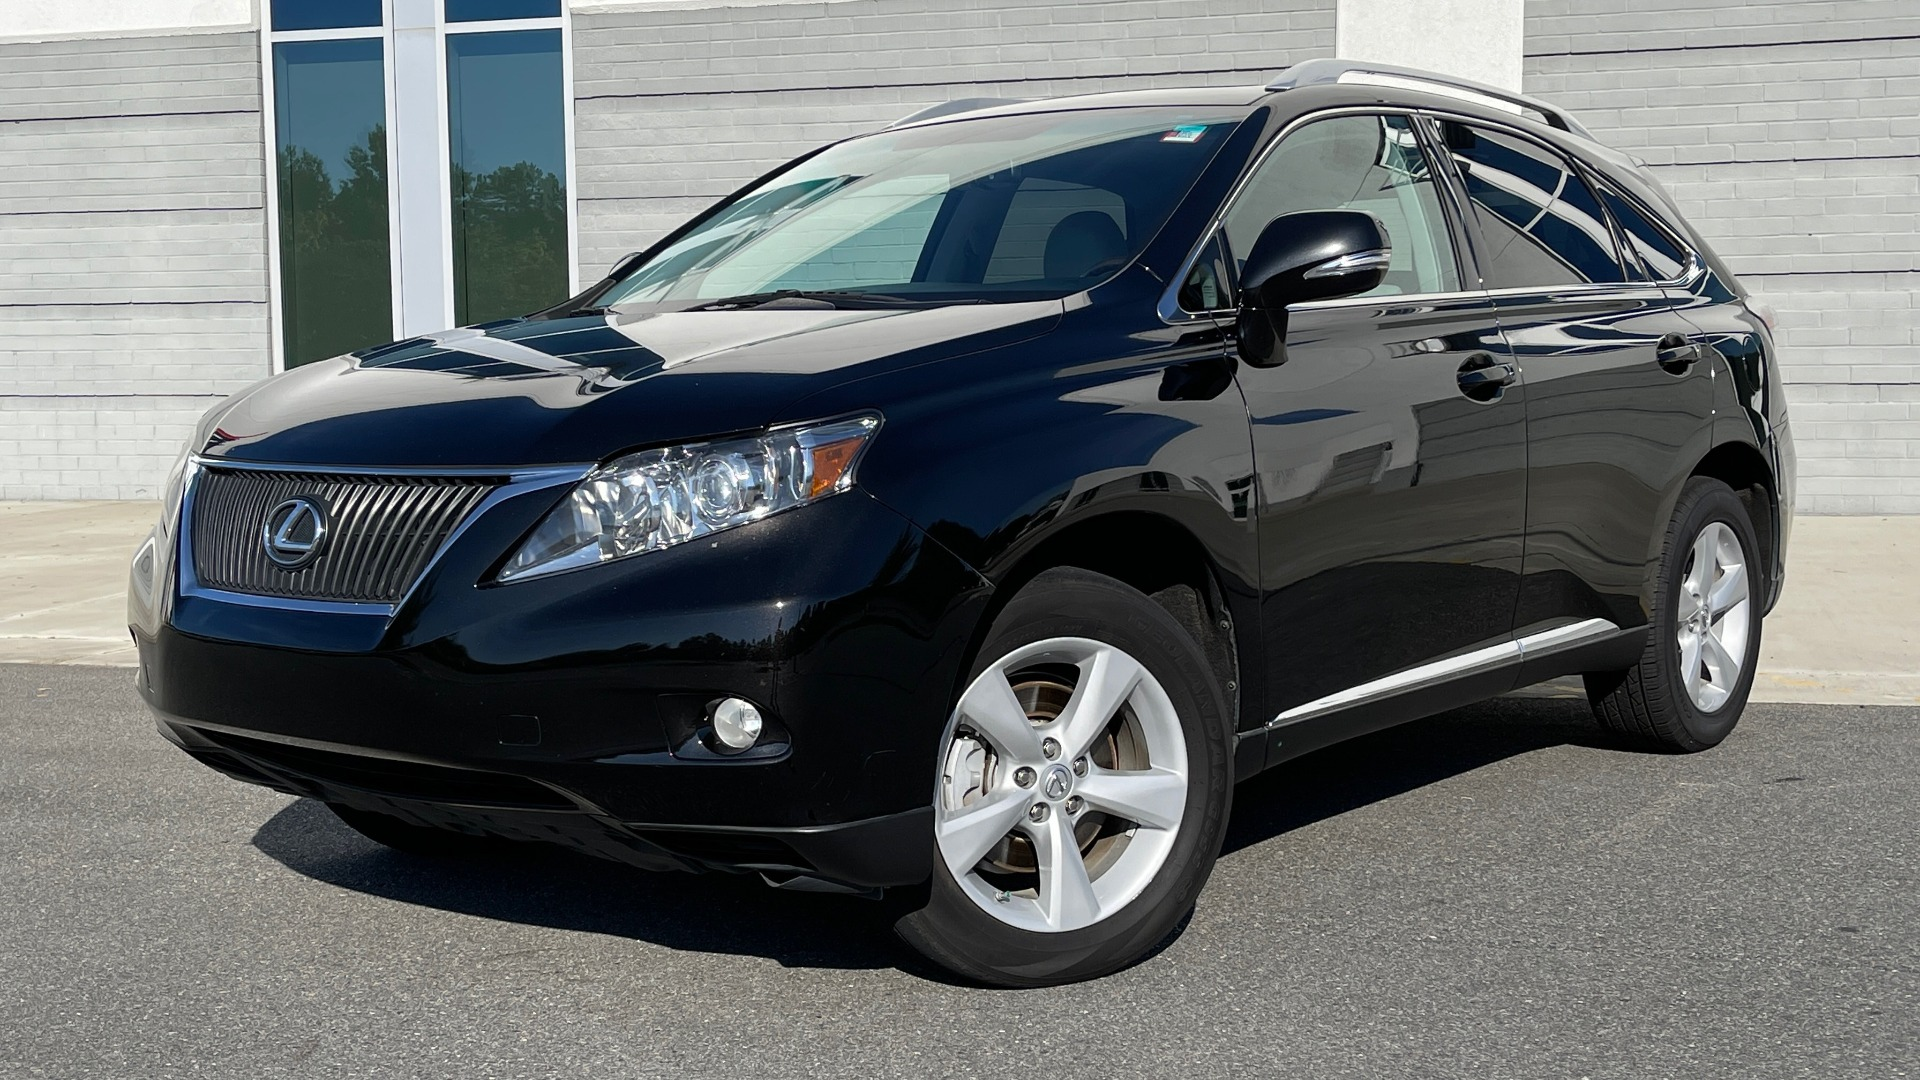 Used 2011 Lexus RX 350 PREMIUM / TOWING PREP PKG / VENTILATED STS / SUNROOF / REARVIEW for sale Sold at Formula Imports in Charlotte NC 28227 1